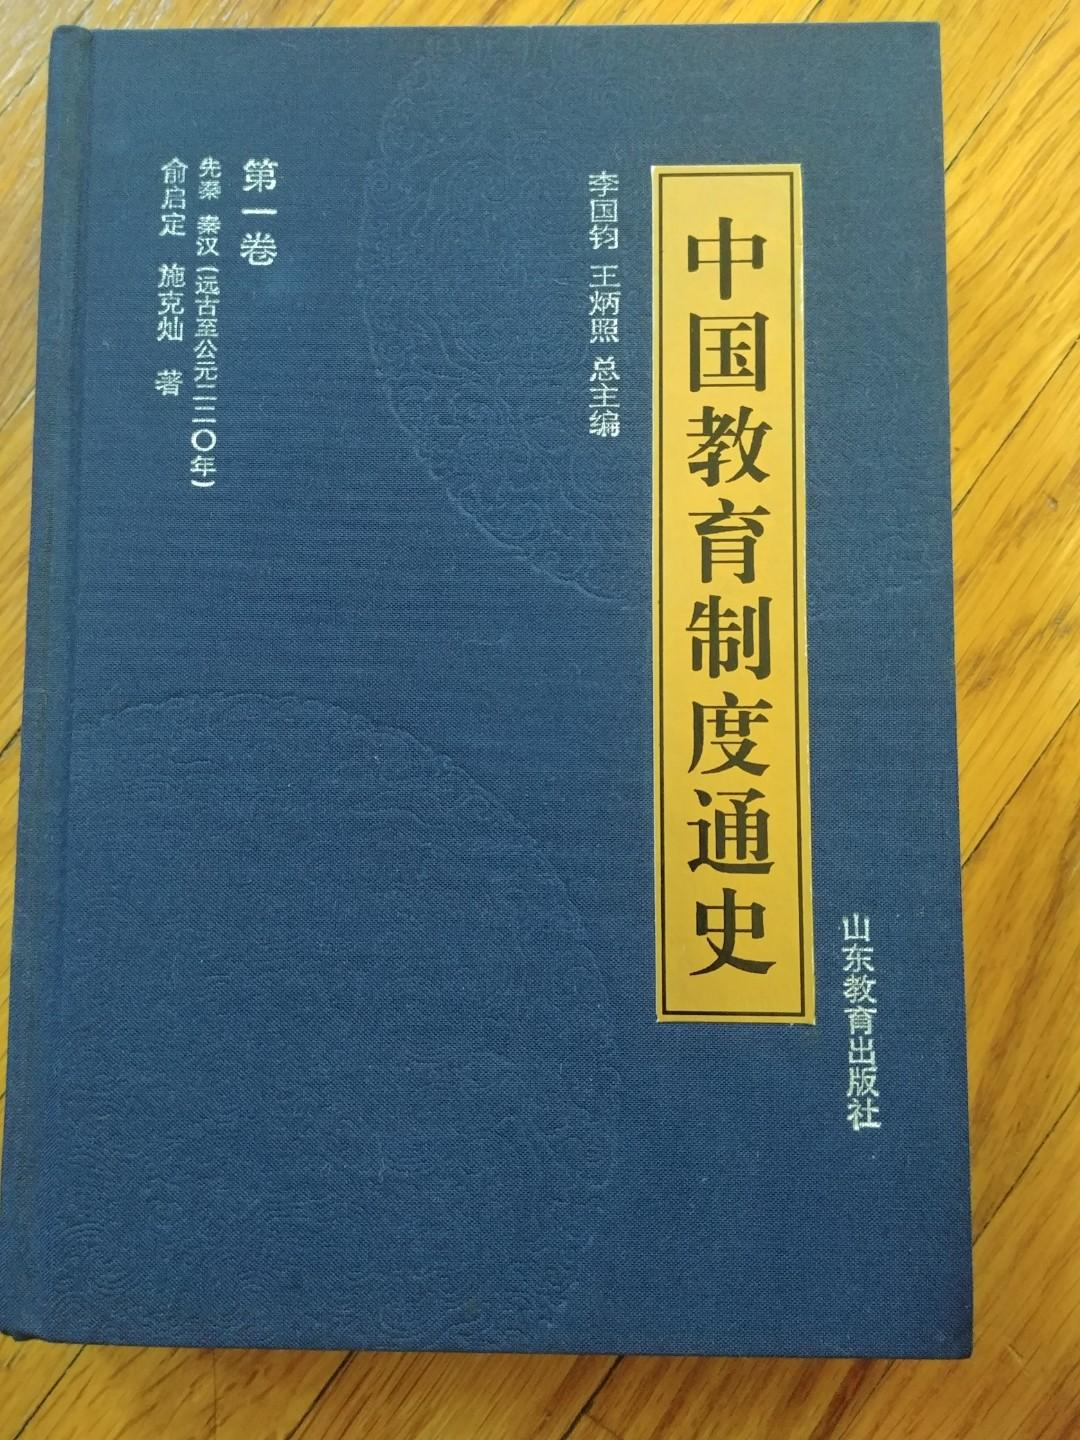 History of Chinese Education System (8 volumes, complete)